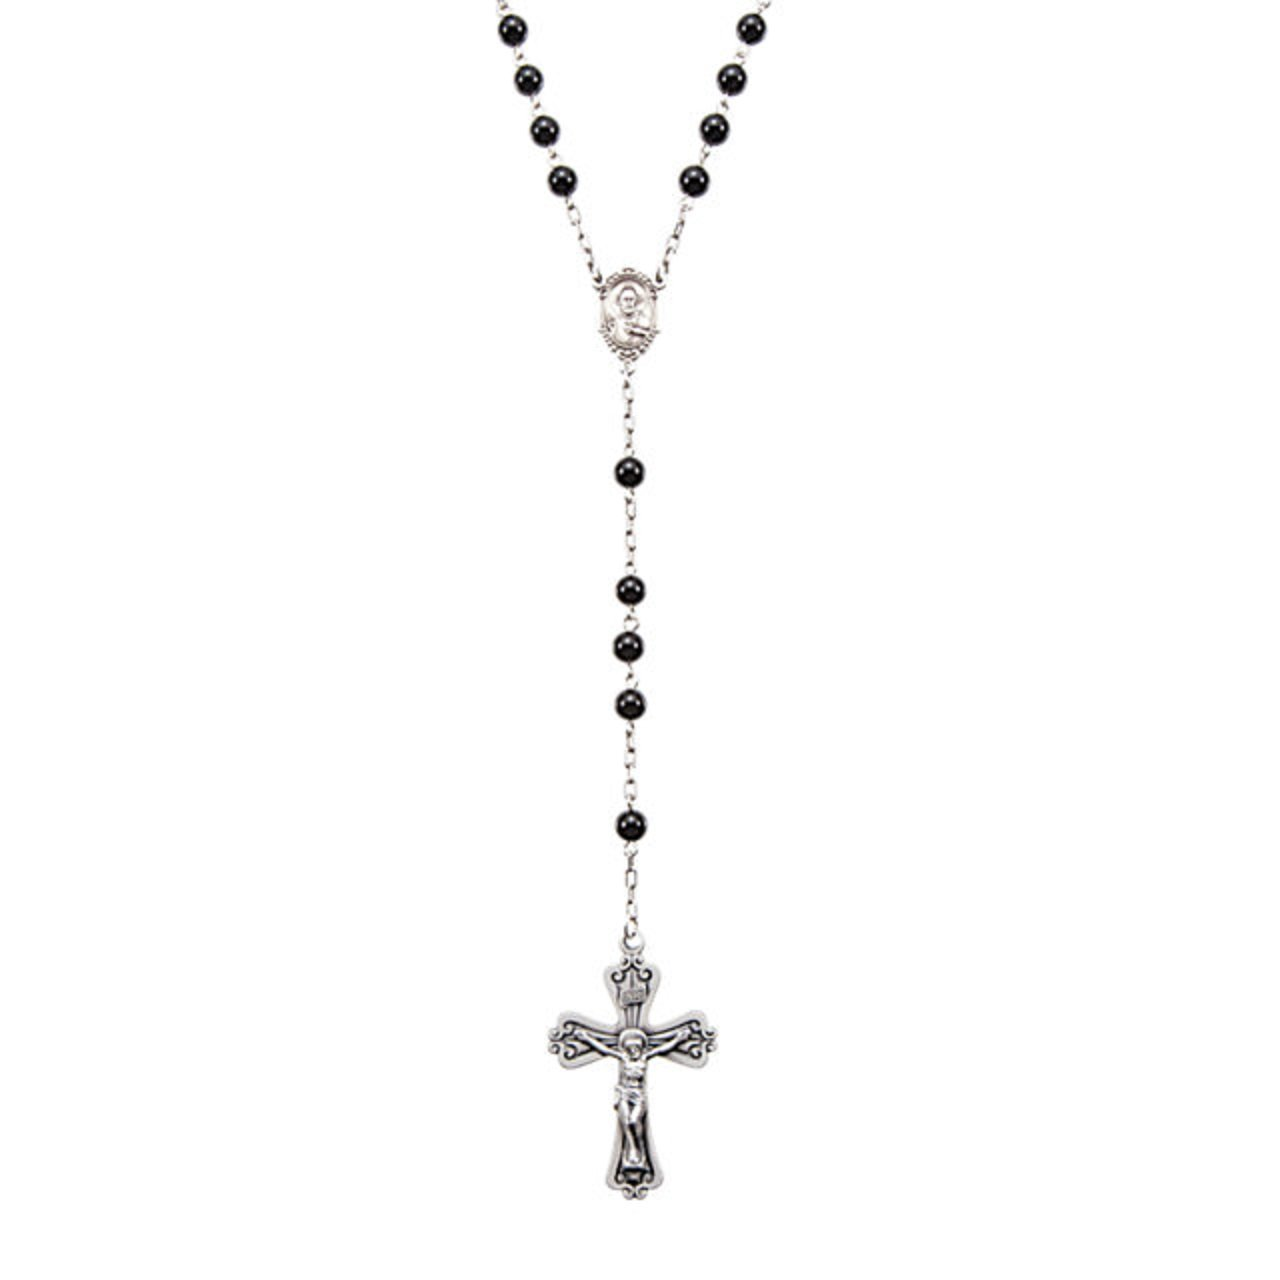 Roxx Fine Jewelry Black Onyx and Sterling Silver Ornate Sacred Heart Center 26'' Rosary Necklace 6mm Beads by Roxx Fine Jewelry (Image #1)